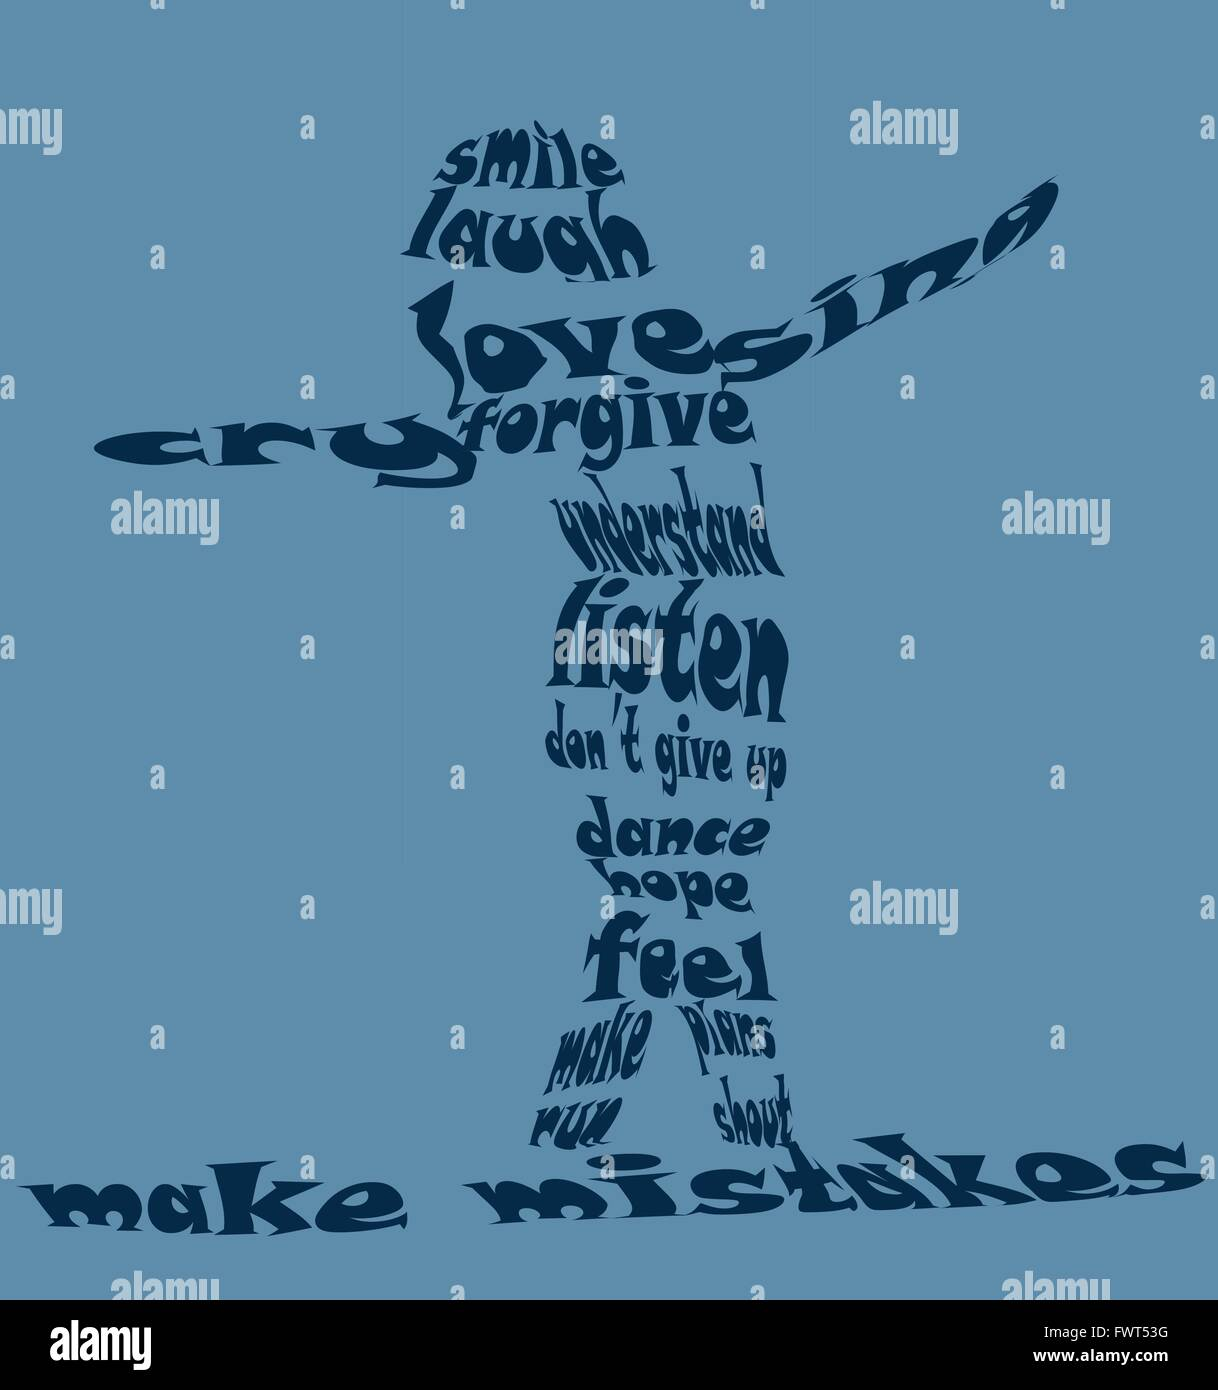 e silhouette made of words sending a positive messages about